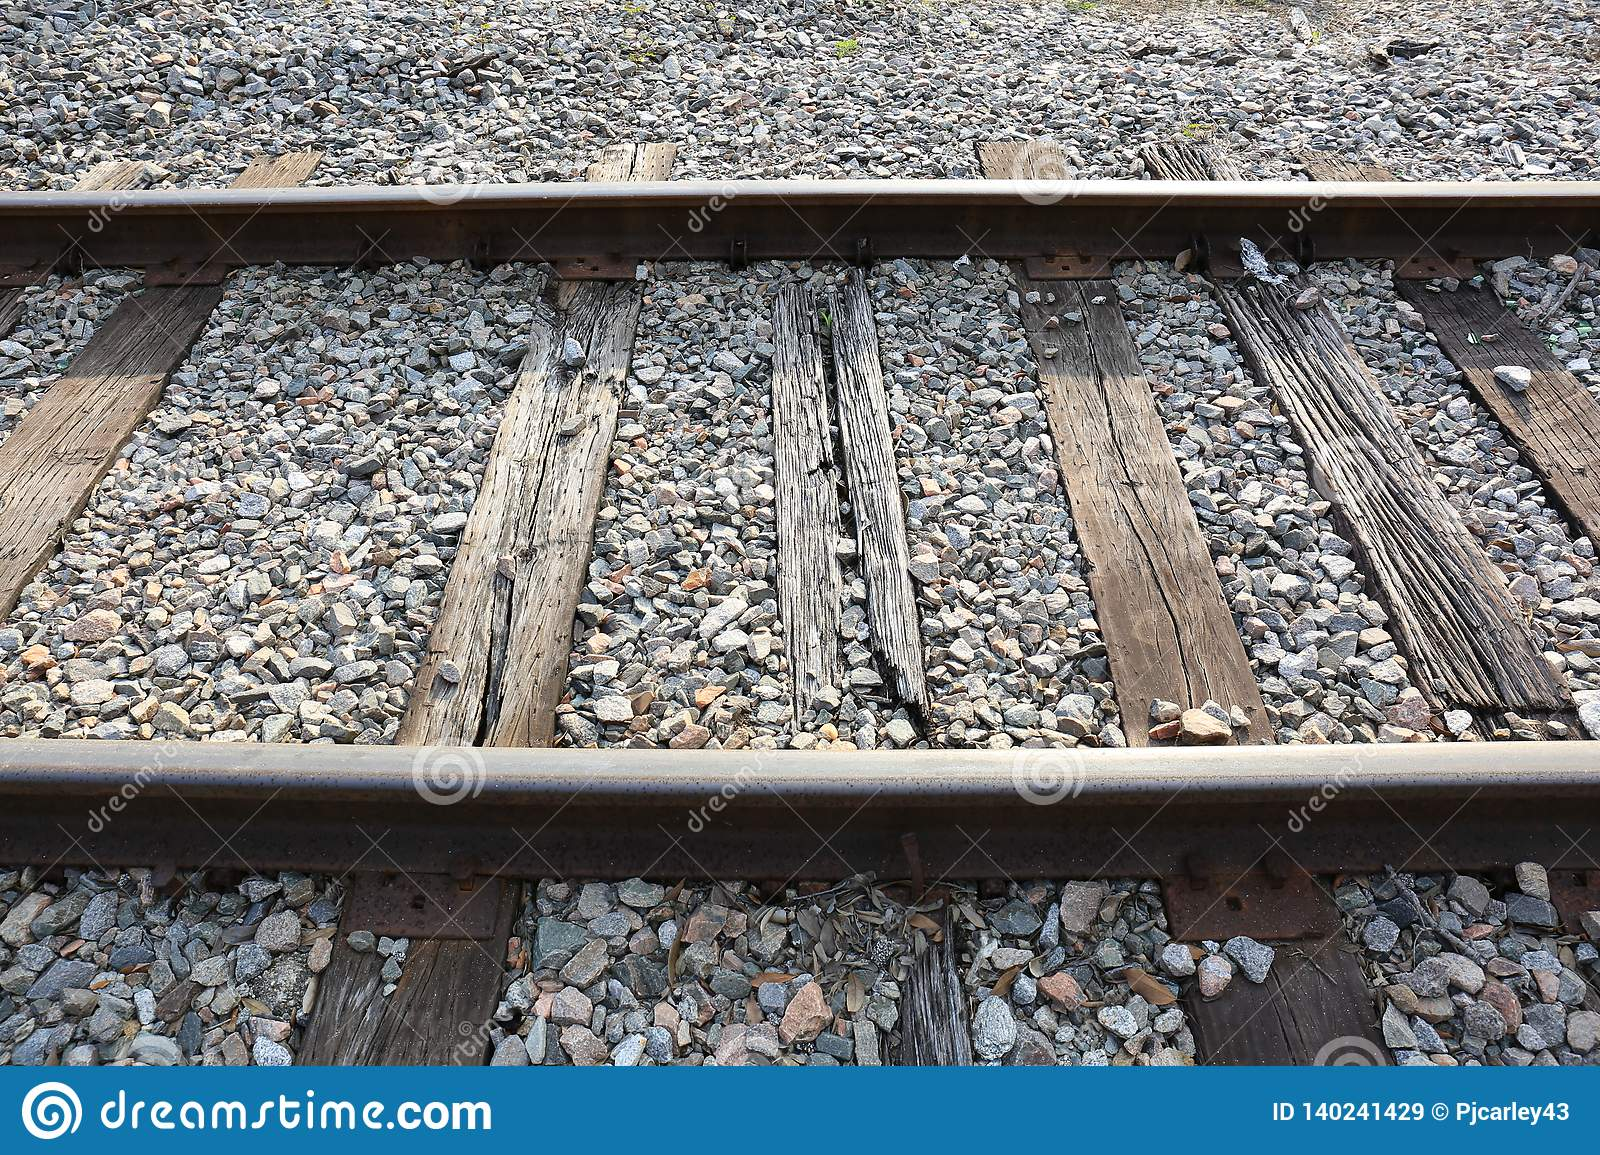 Old Railroad Tracks with Sunshine Gleaming on the Rails